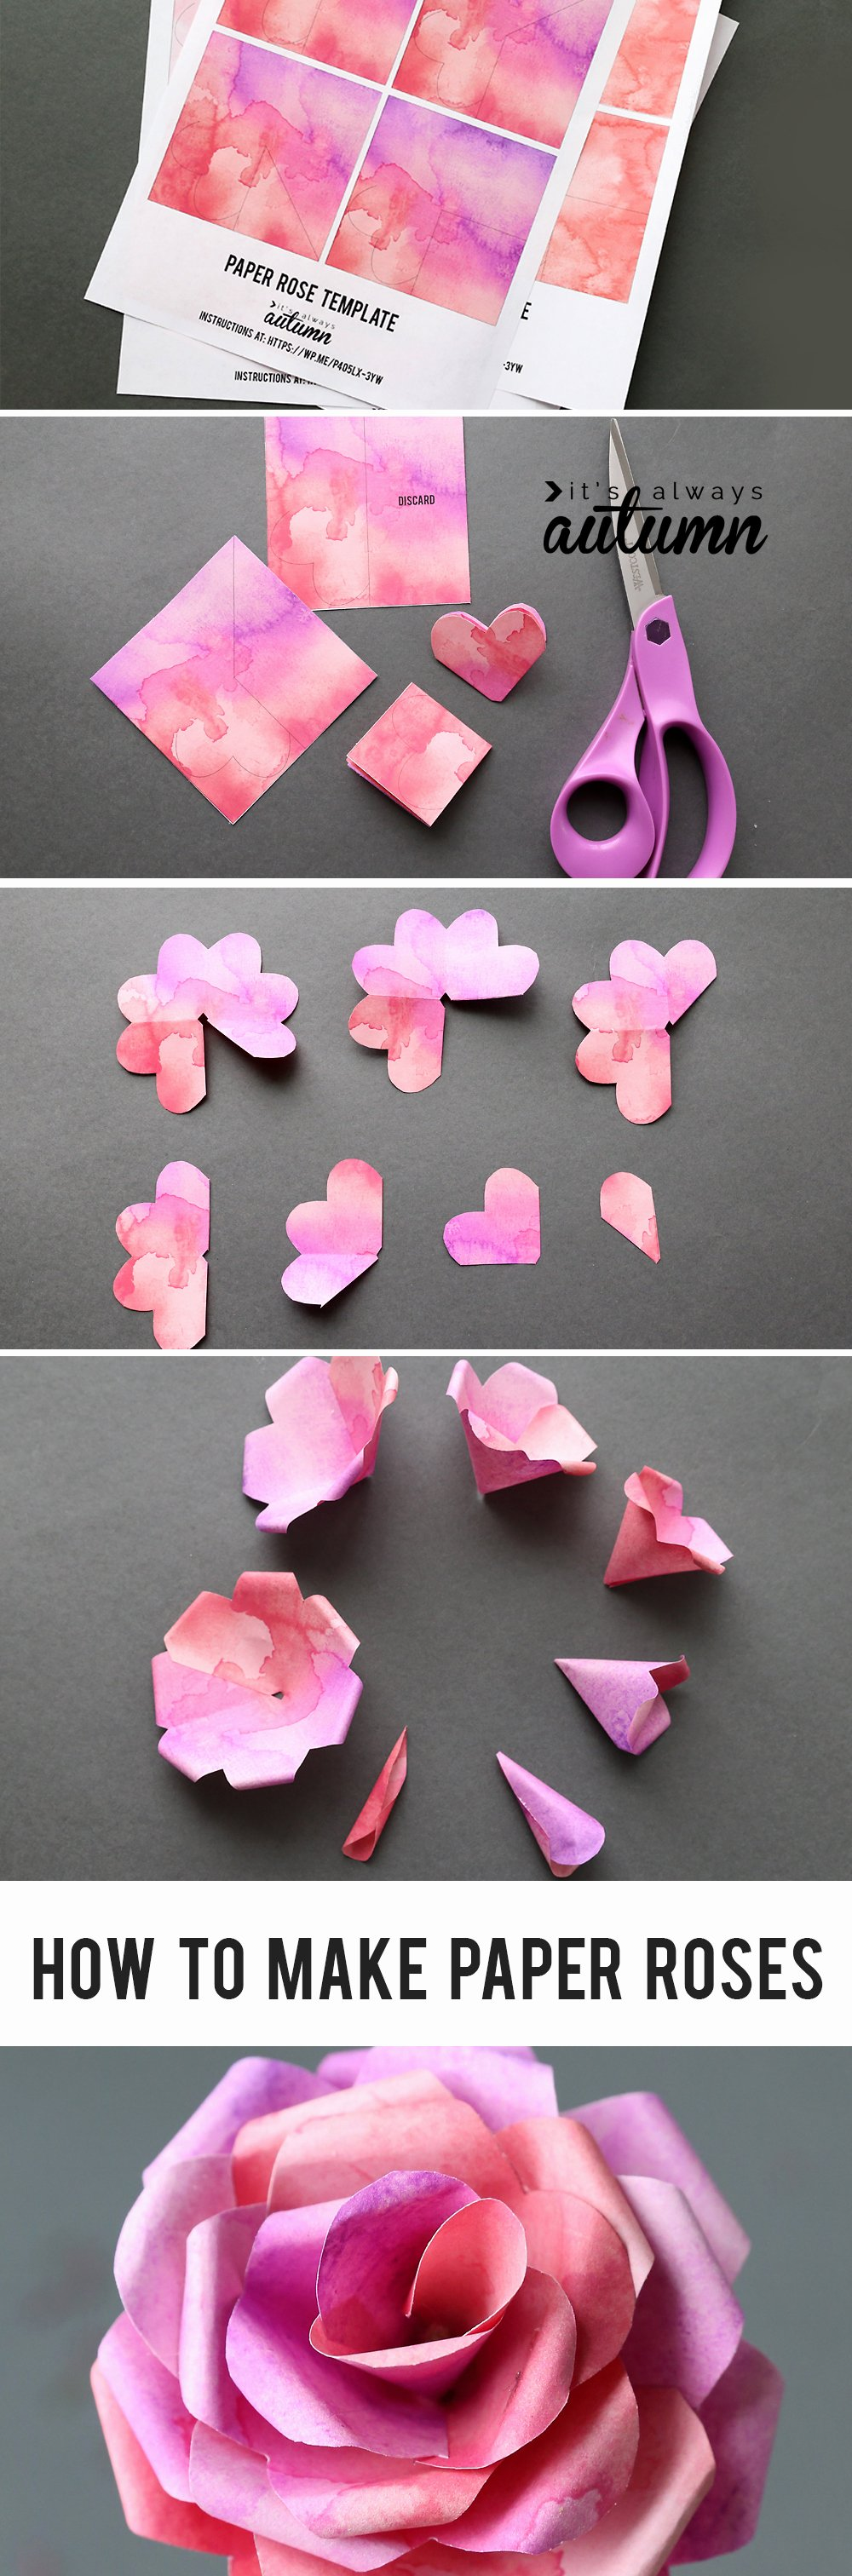 Templates for Paper Flowers Best Of Make Gorgeous Paper Roses with This Free Paper Rose